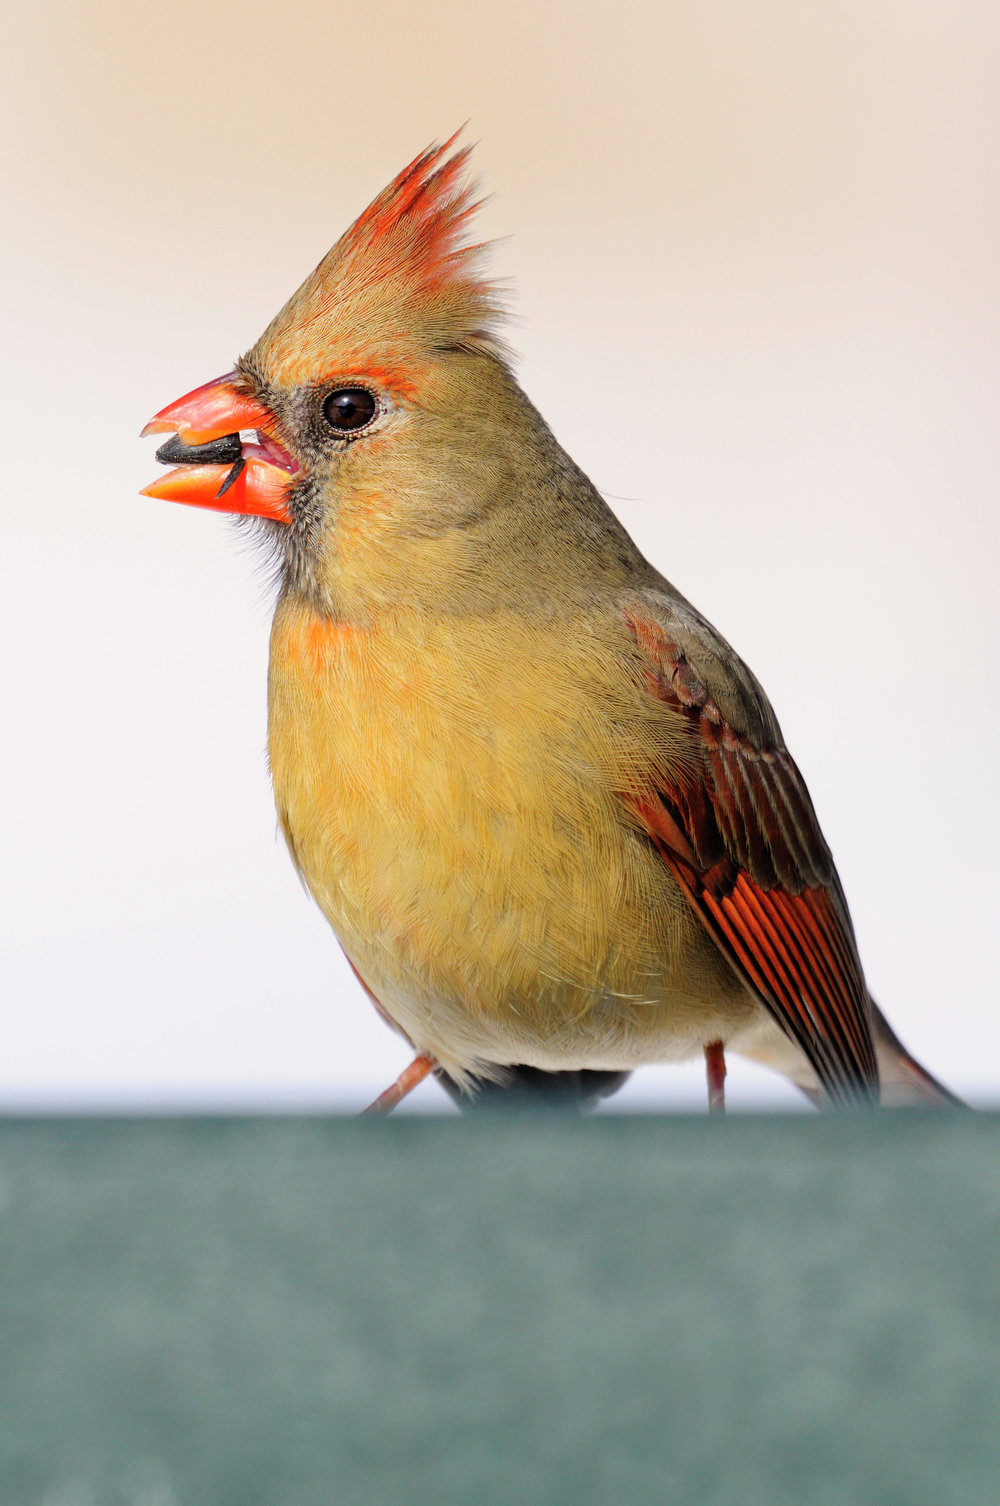 A northern cardinal female is feeding on sunflower seeds from an open plaform feeder. Sunflower seeds attract a considerable number of songbirds.